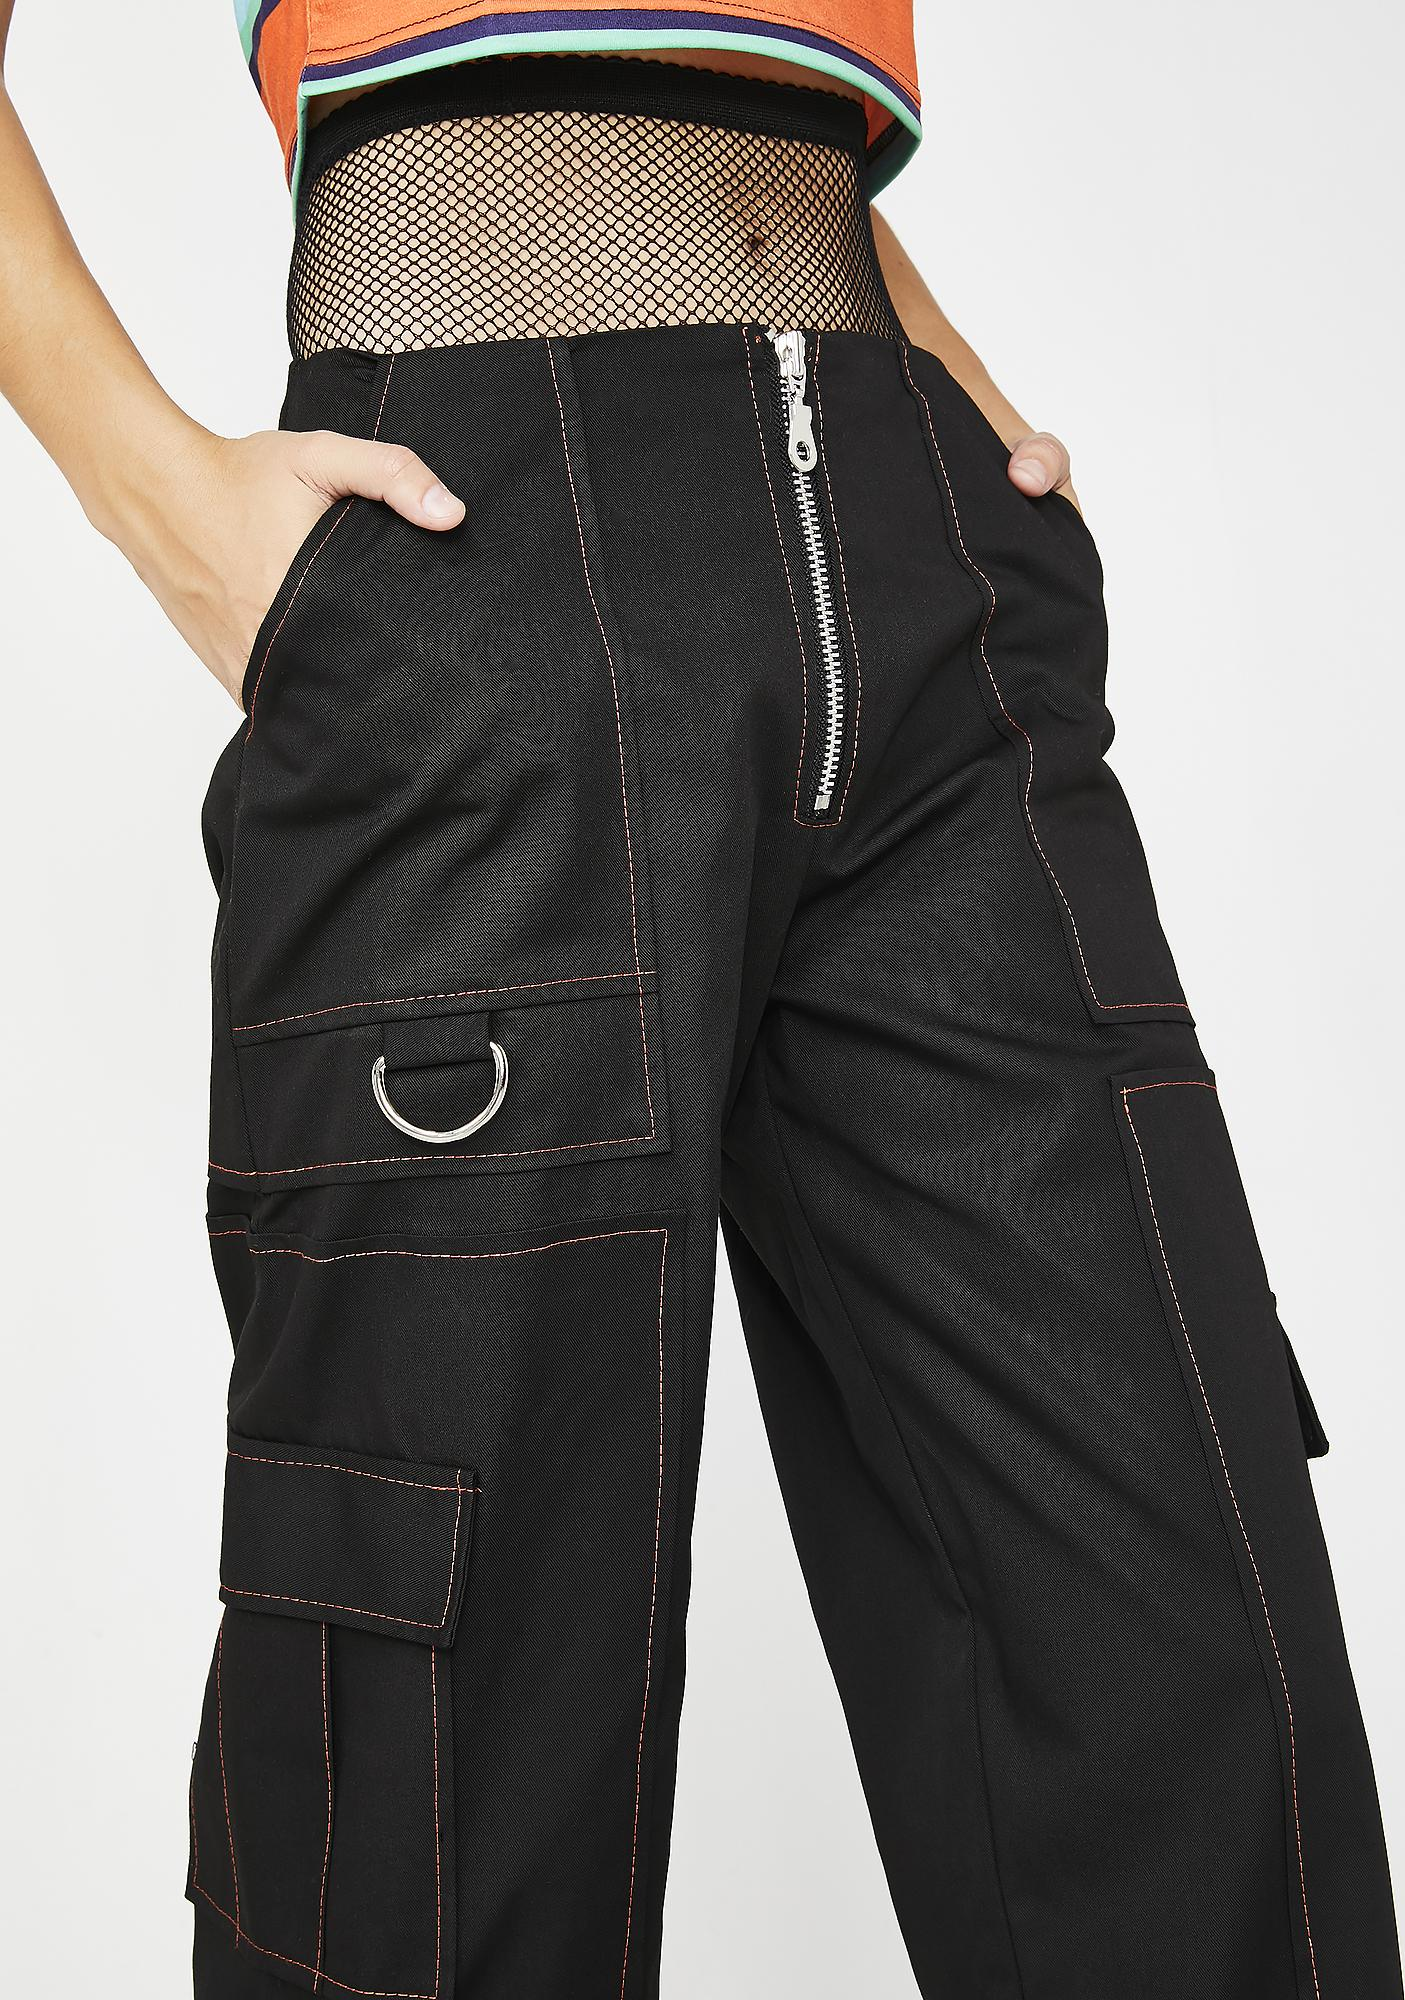 The Ragged Priest Voyage Pants